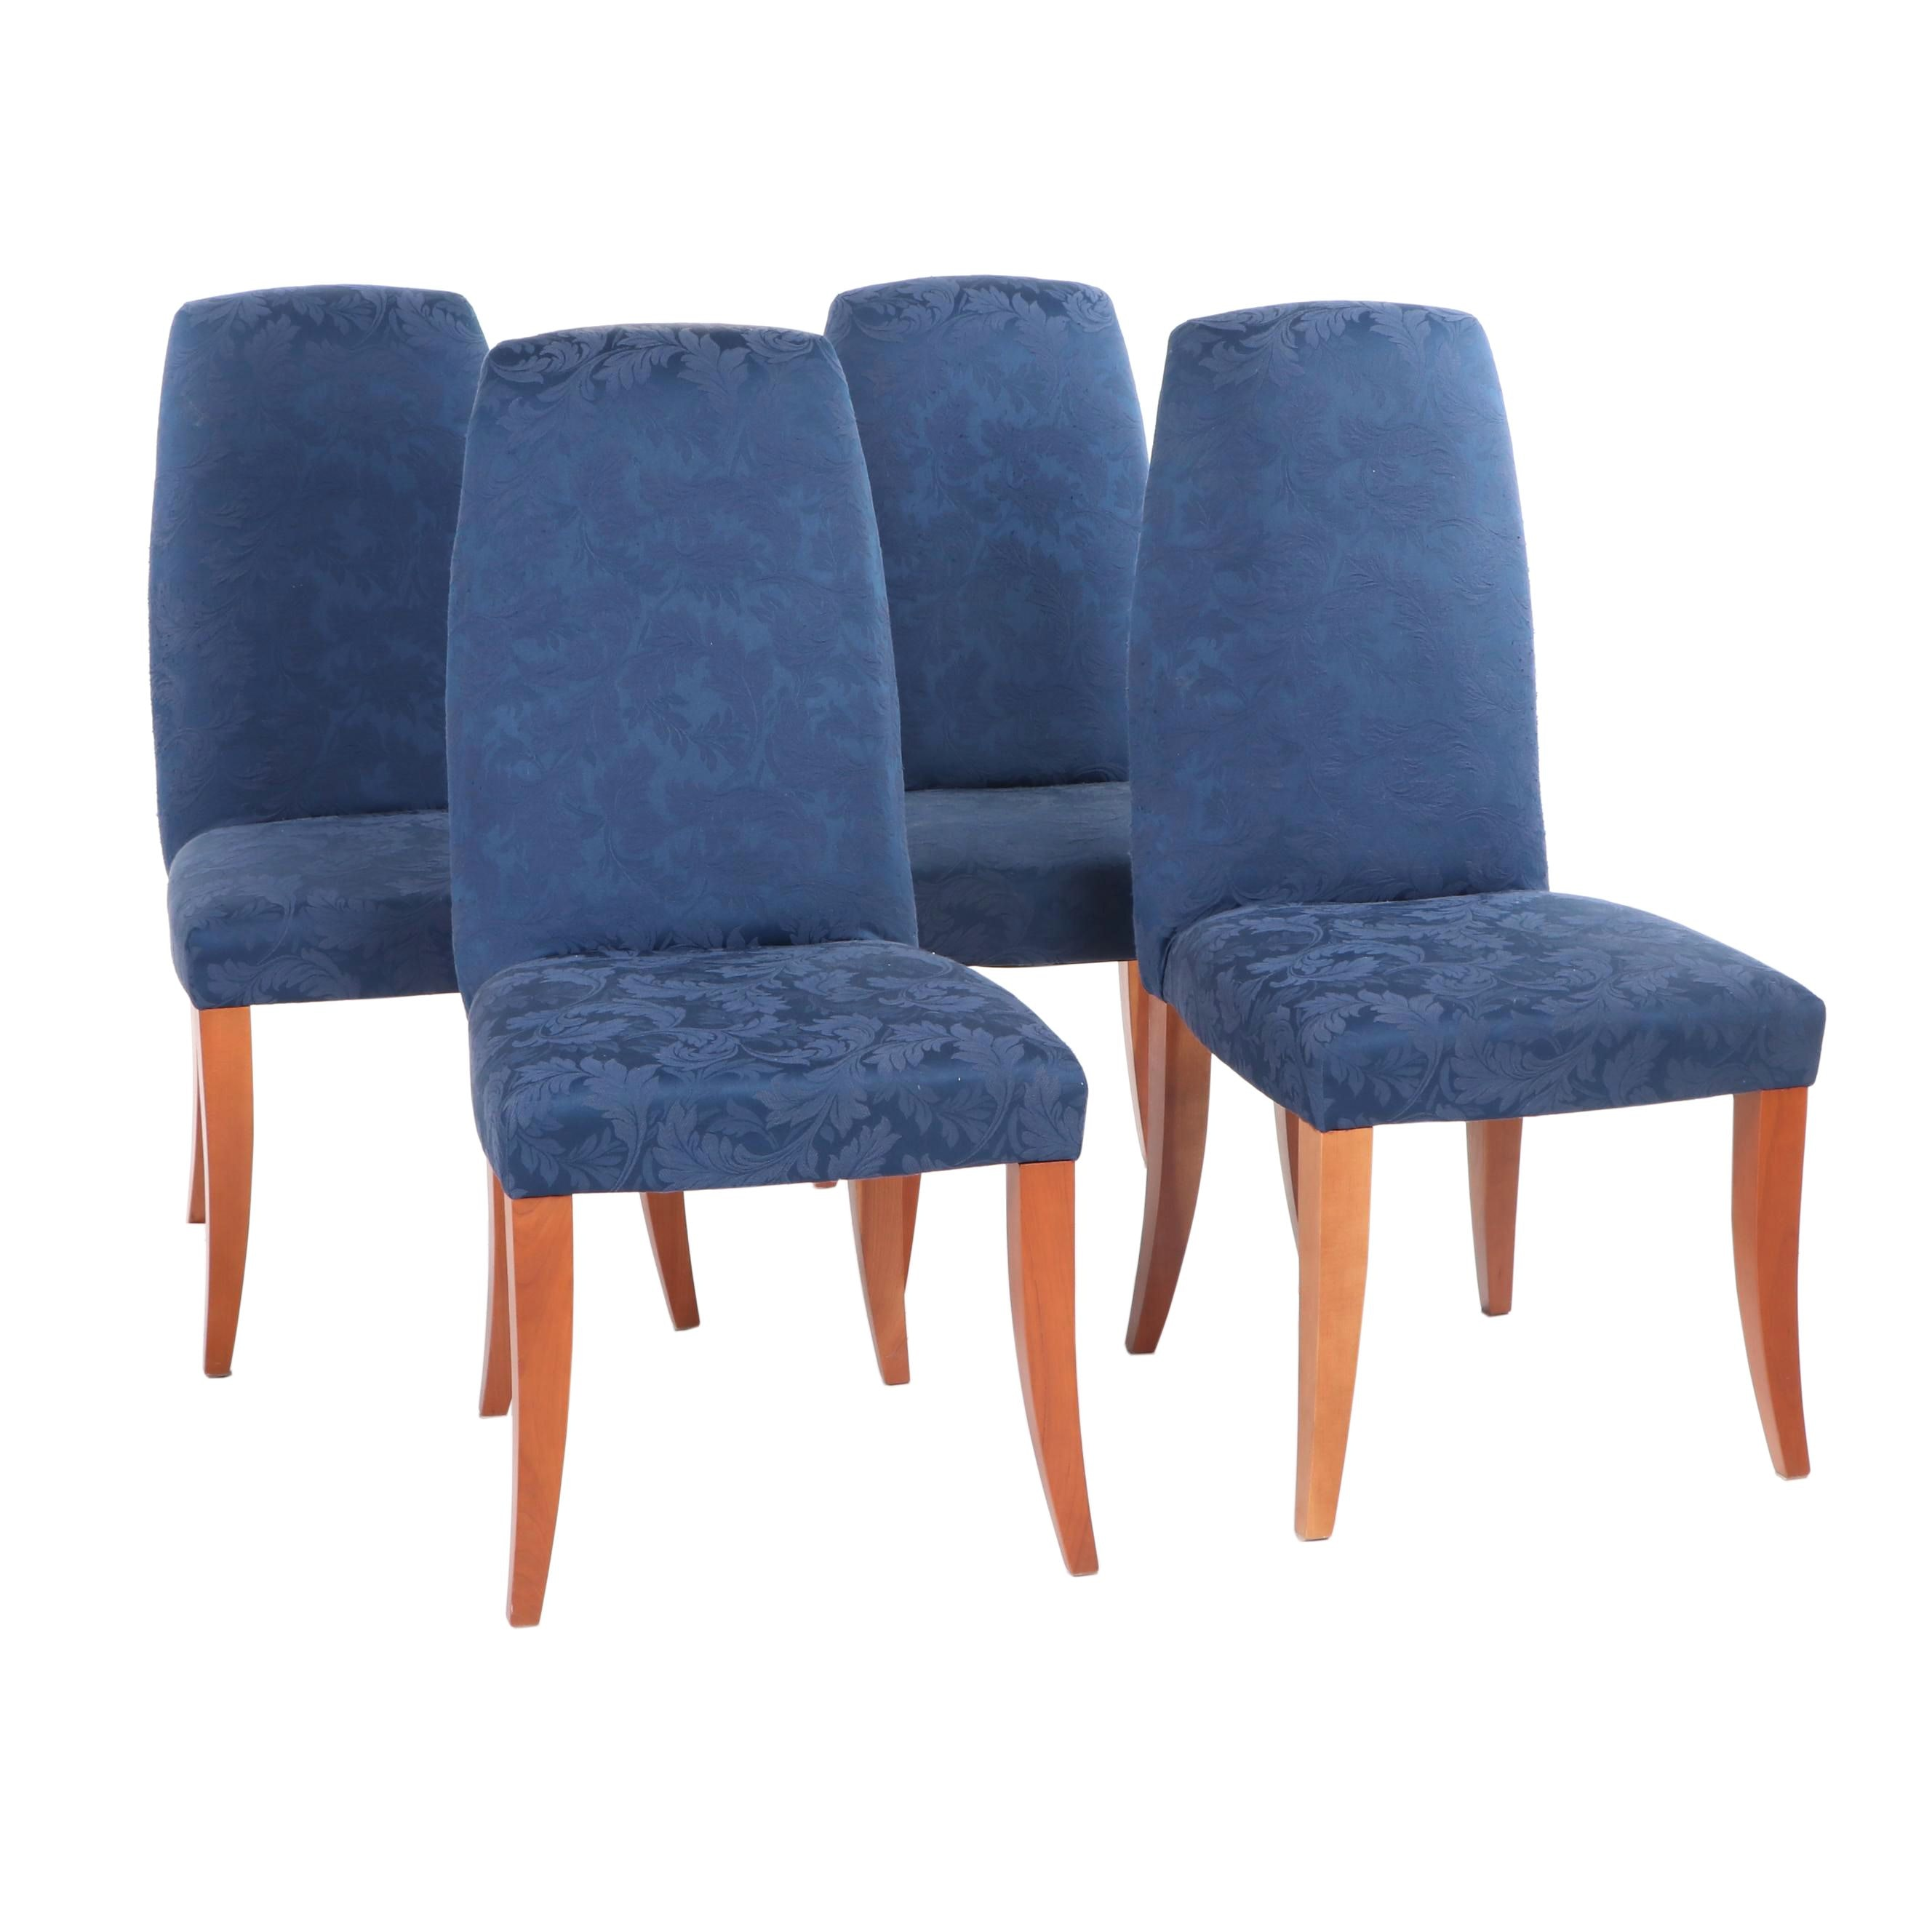 Cherry Upholstered Dining Chairs, Contemporary